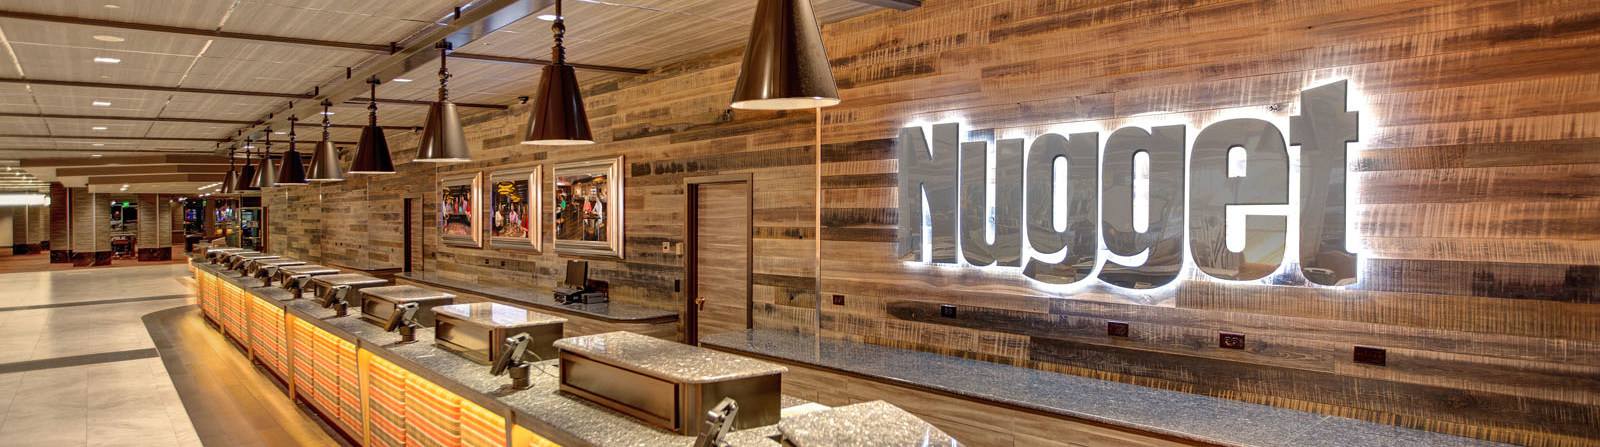 The Nugget Hotel